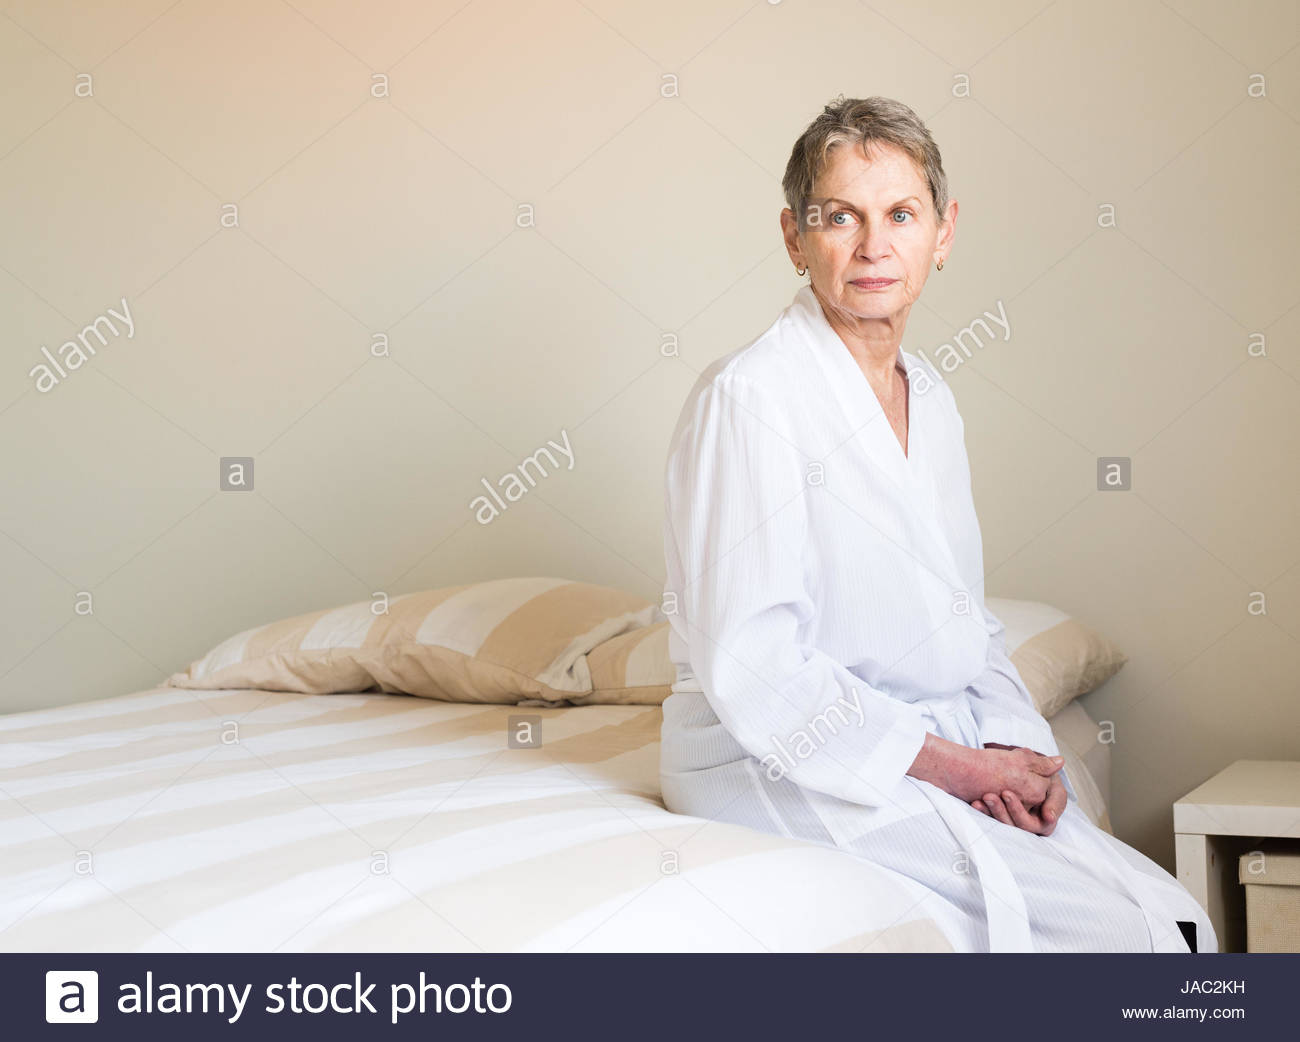 Elderly woman with short hair and white dressing gown seated on bed ...